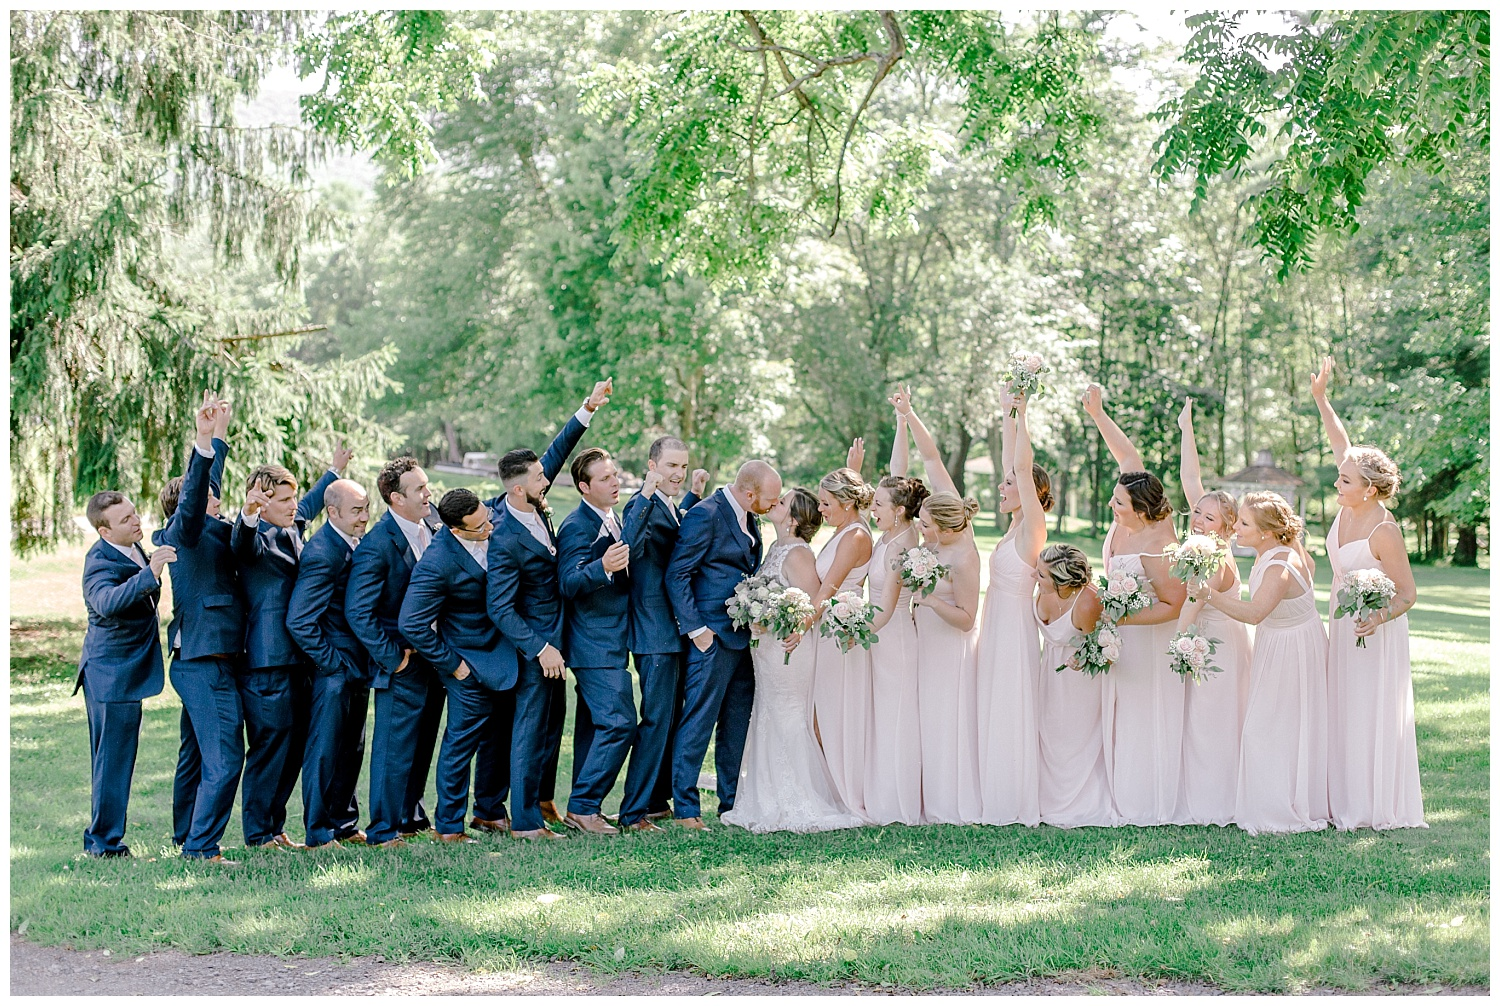 Navy and Blush pink inspired summertime whitewoods wedding in Northeastern Pennsylvania NEPA wapwallopen wedding venue by  PA based wedding and lifestyle photographer Lytle photography_0027.jpg